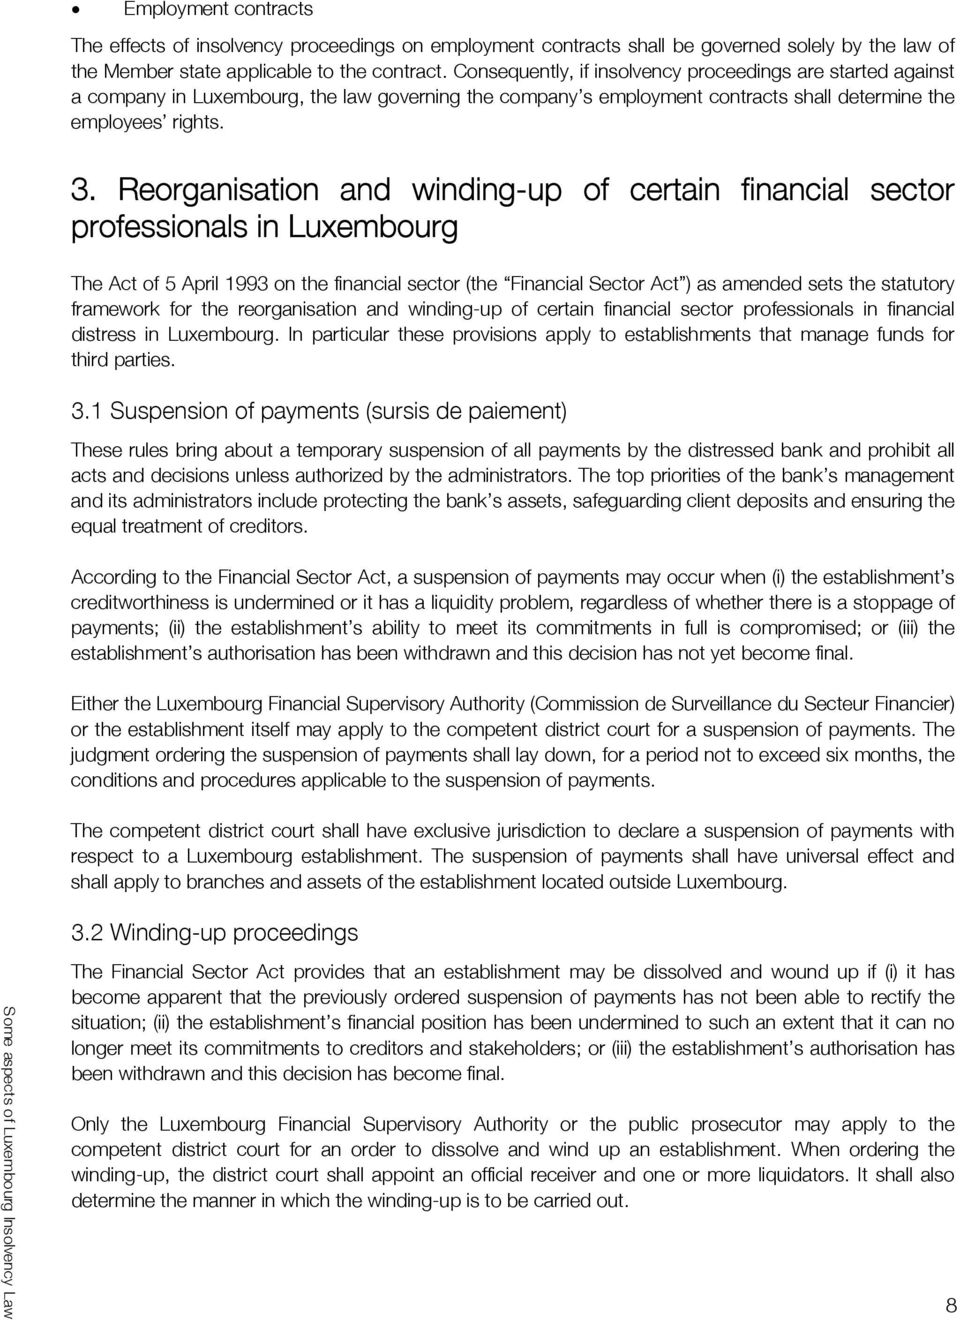 Reorganisation and winding-up of certain financial sector professionals in Luxembourg The Act of 5 April 1993 on the financial sector (the Financial Sector Act) as amended sets the statutory